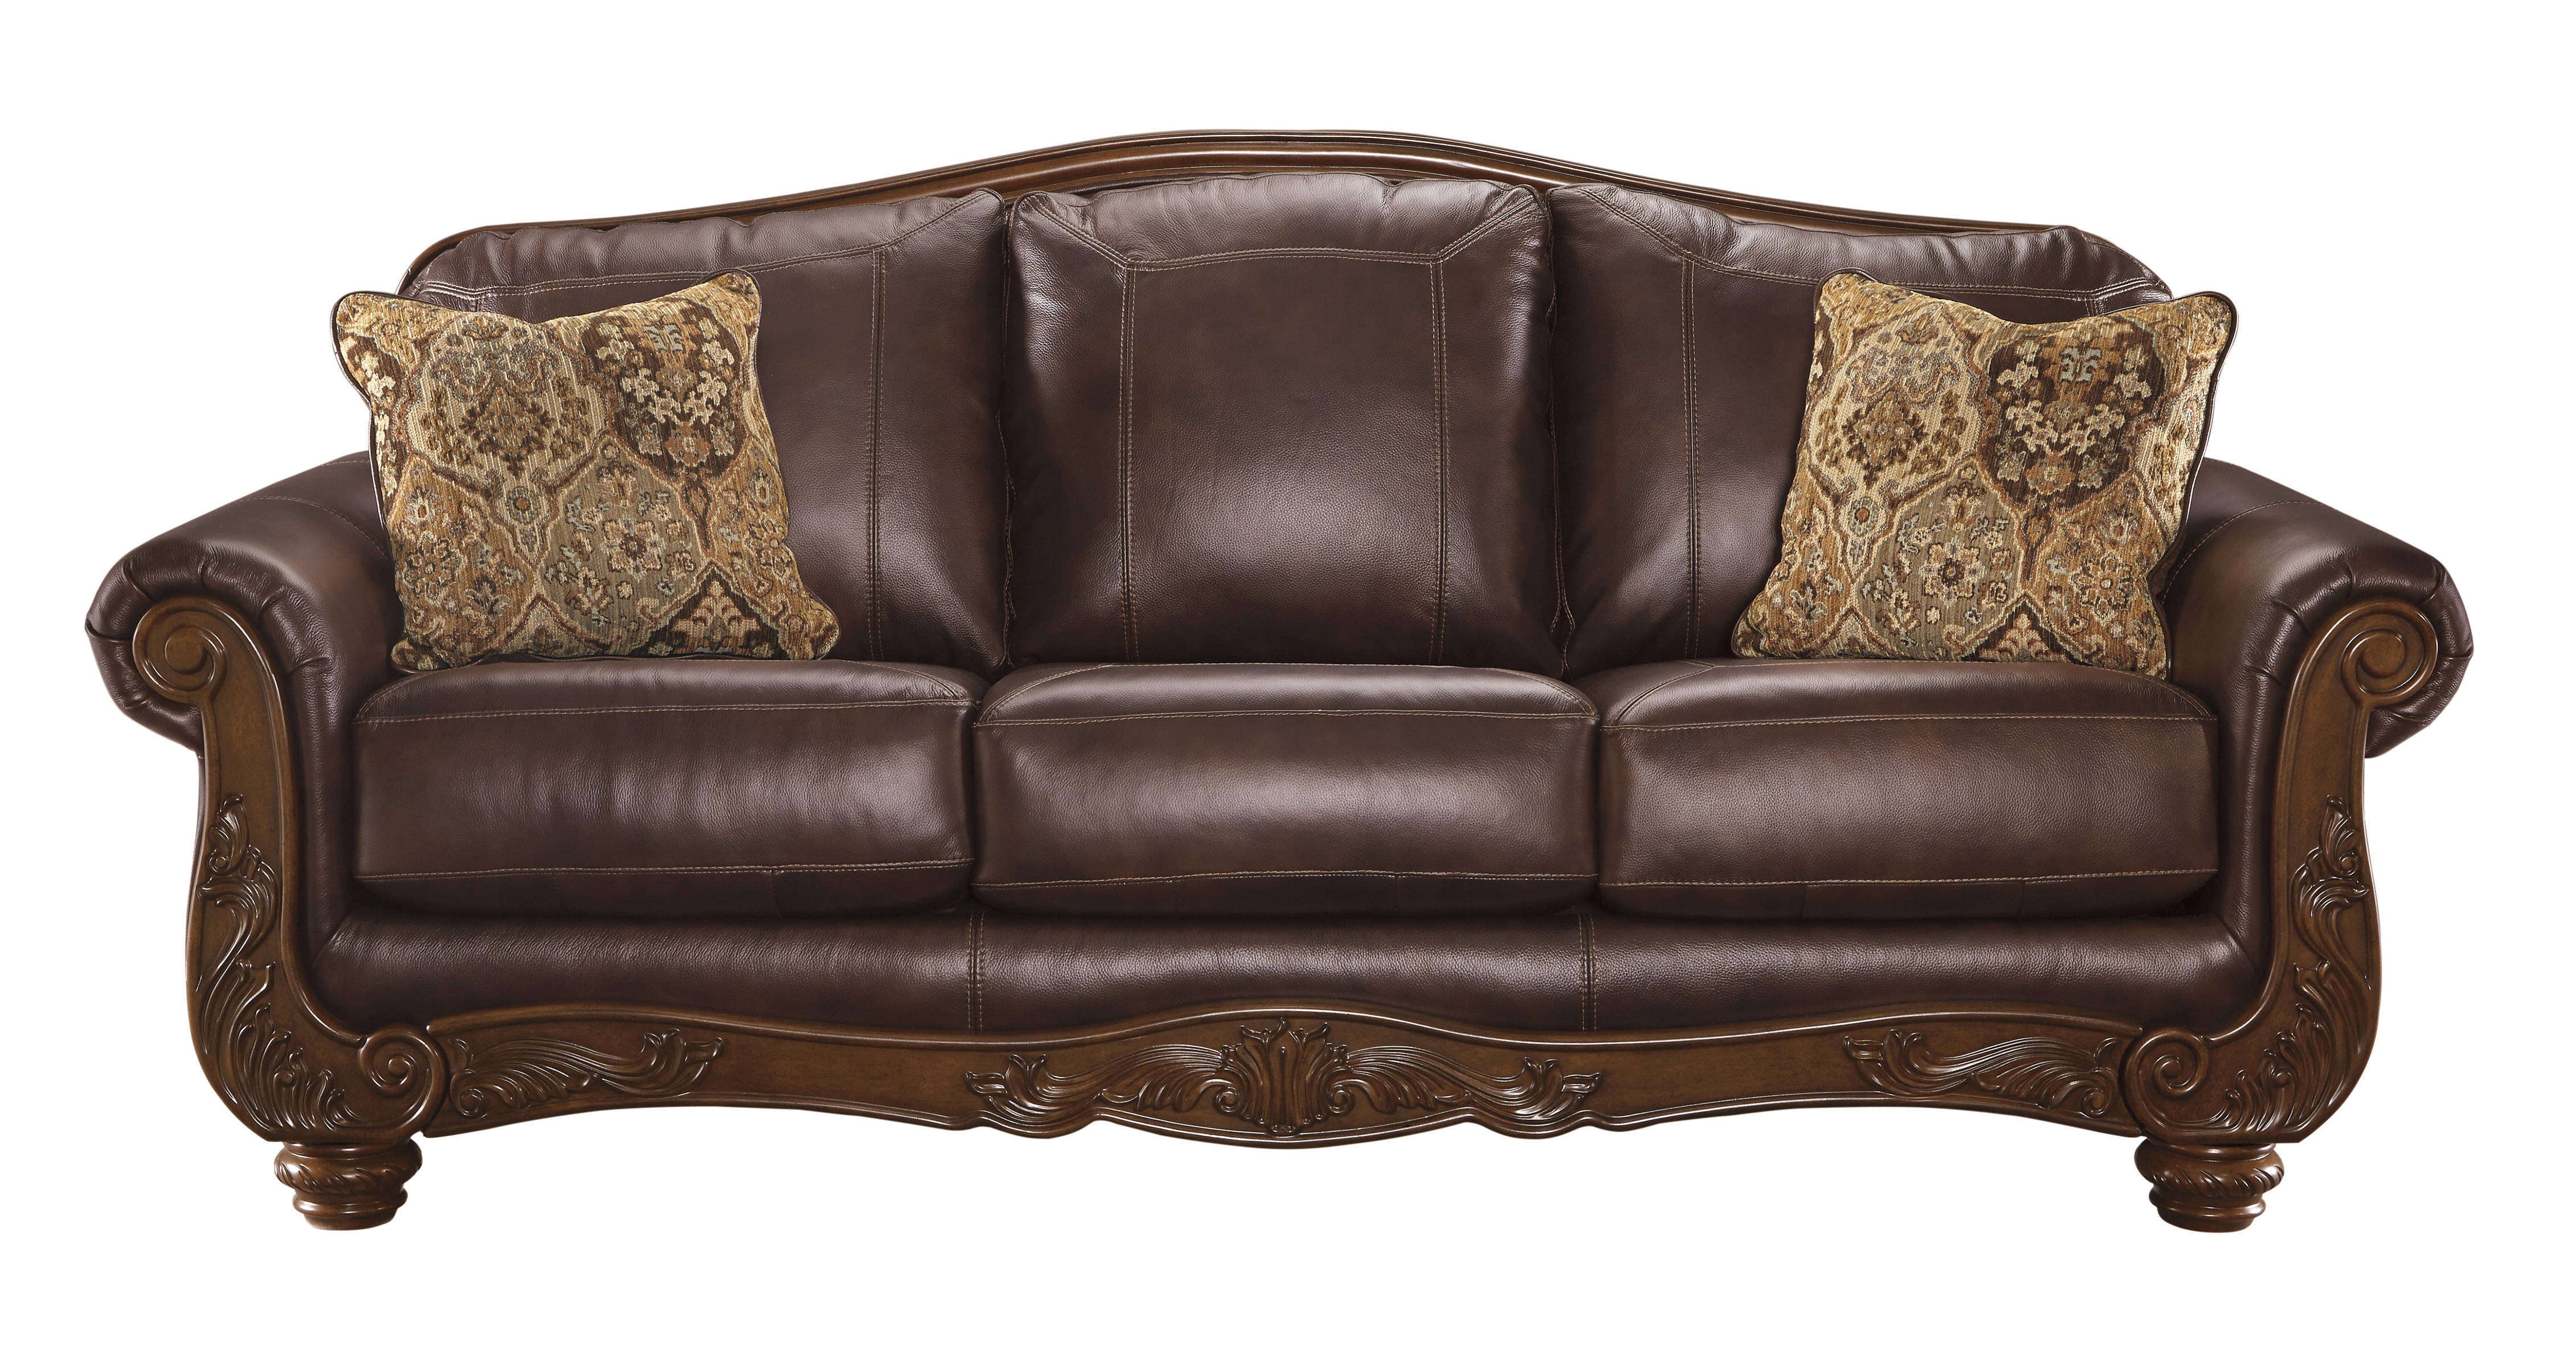 Ashley Furniture Coil Sofa Reviews Awesome Home